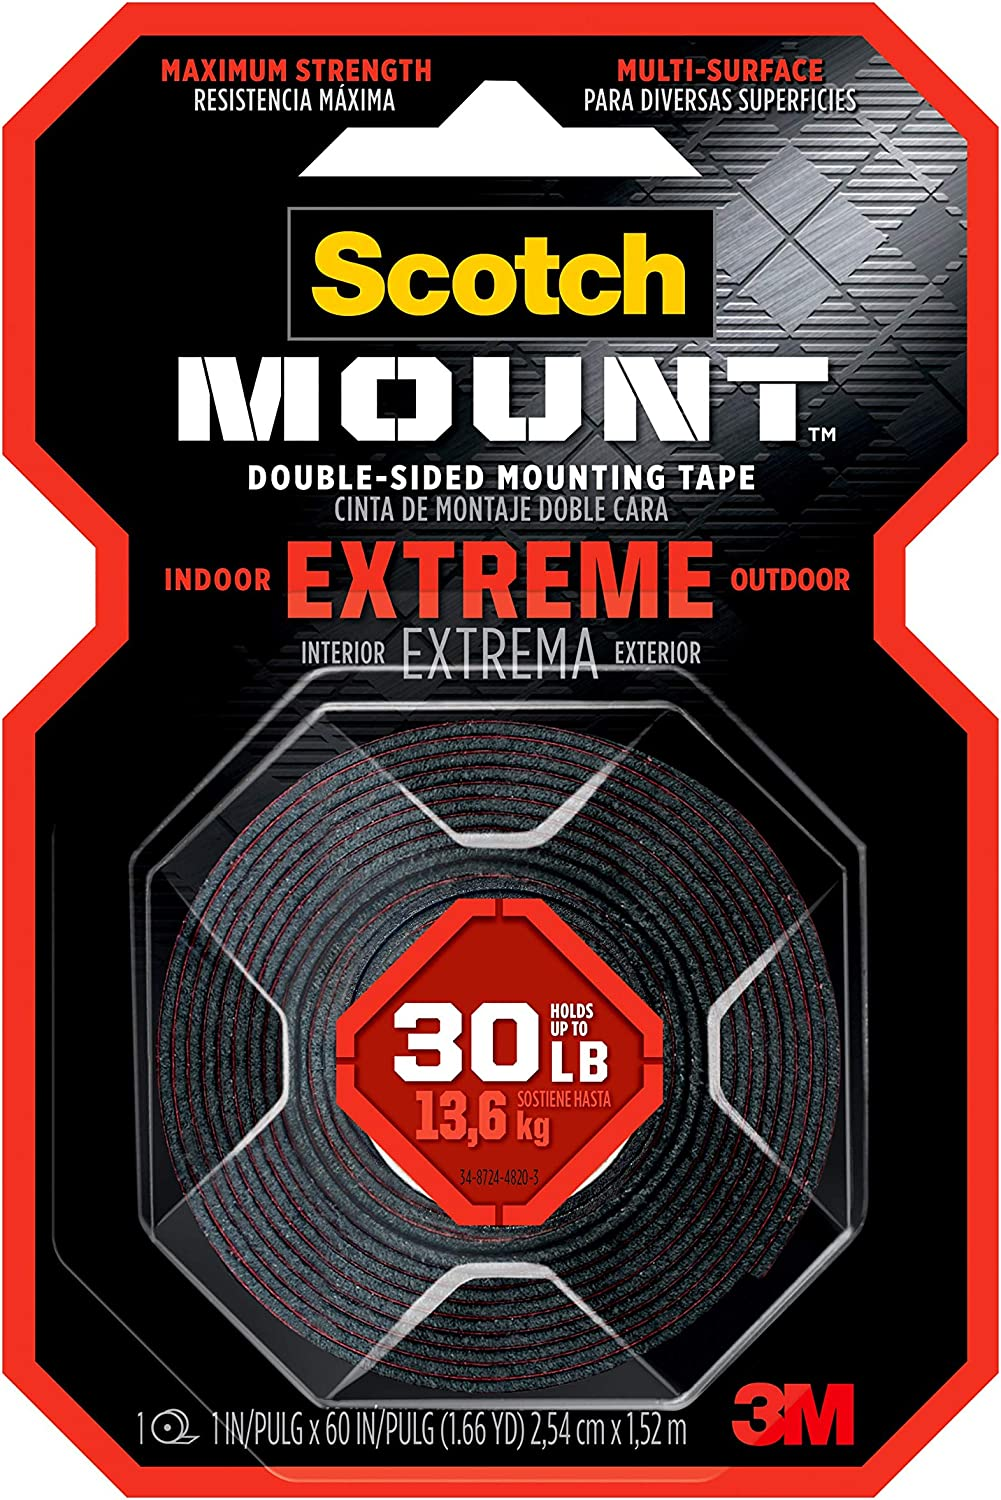 Scotch-Mount Extreme Double-Sided Mounting Tape